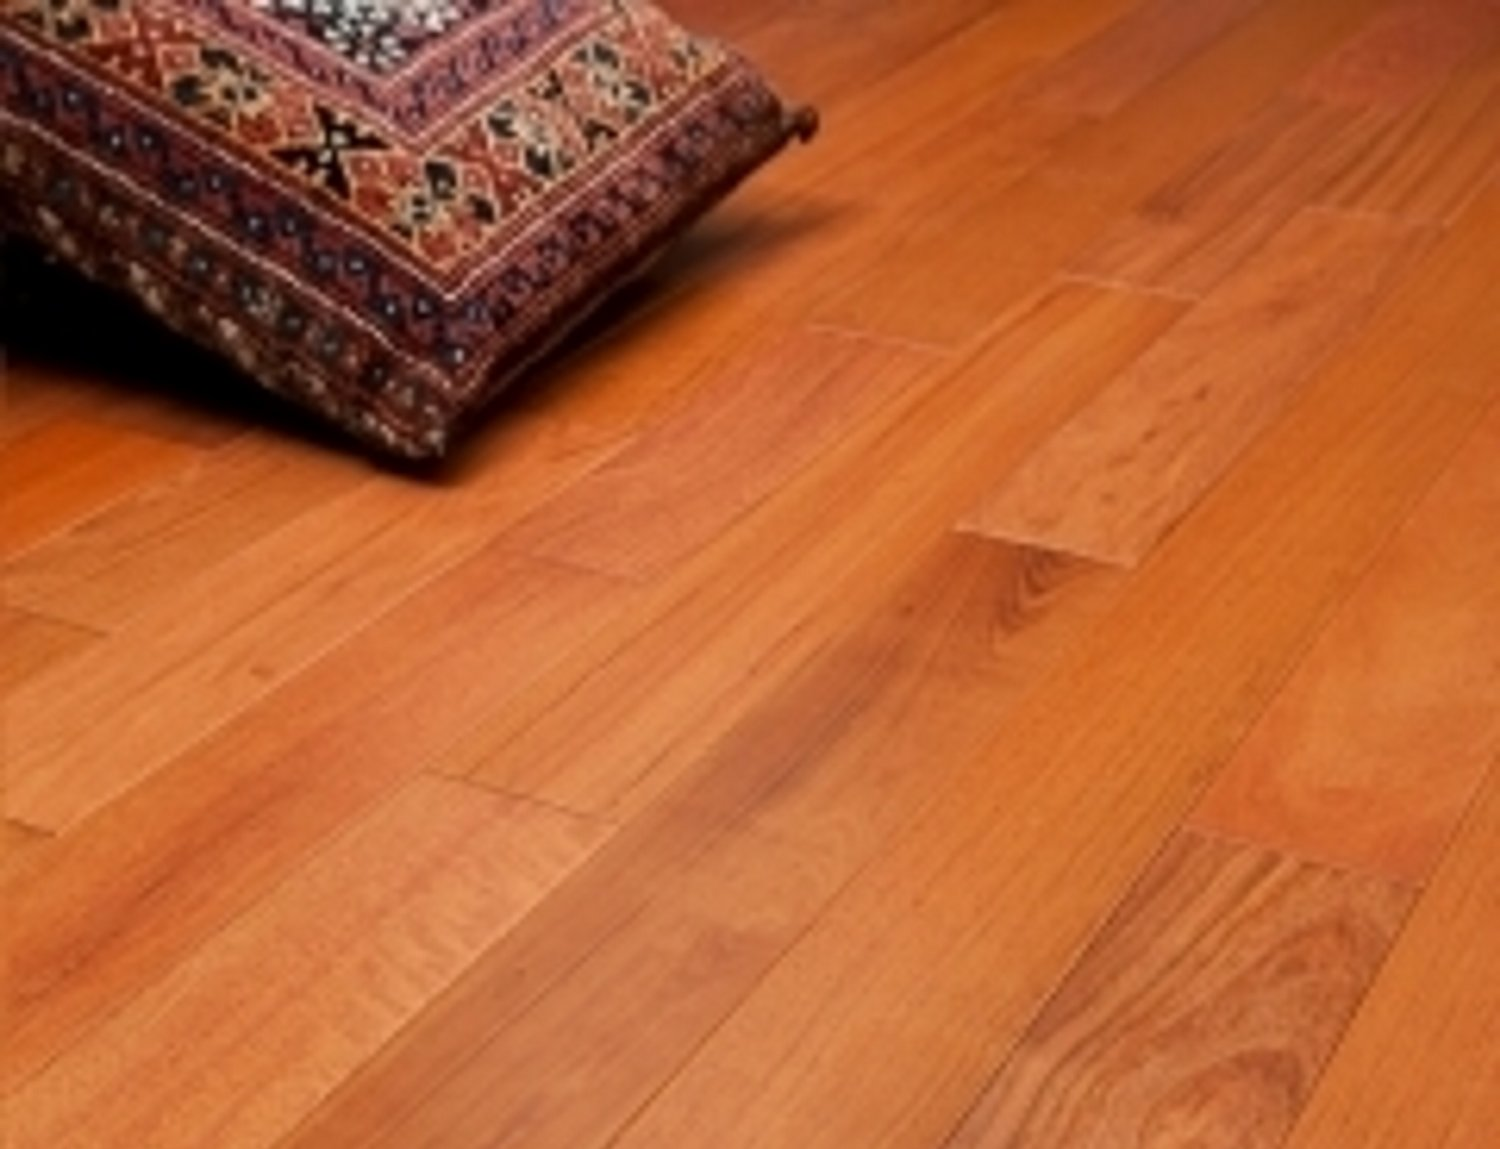 Brazilian Teak Prefinished Engineered 5 x 1//2 Wood Flooring Samples at Discount Prices by Hurst Hardwoods